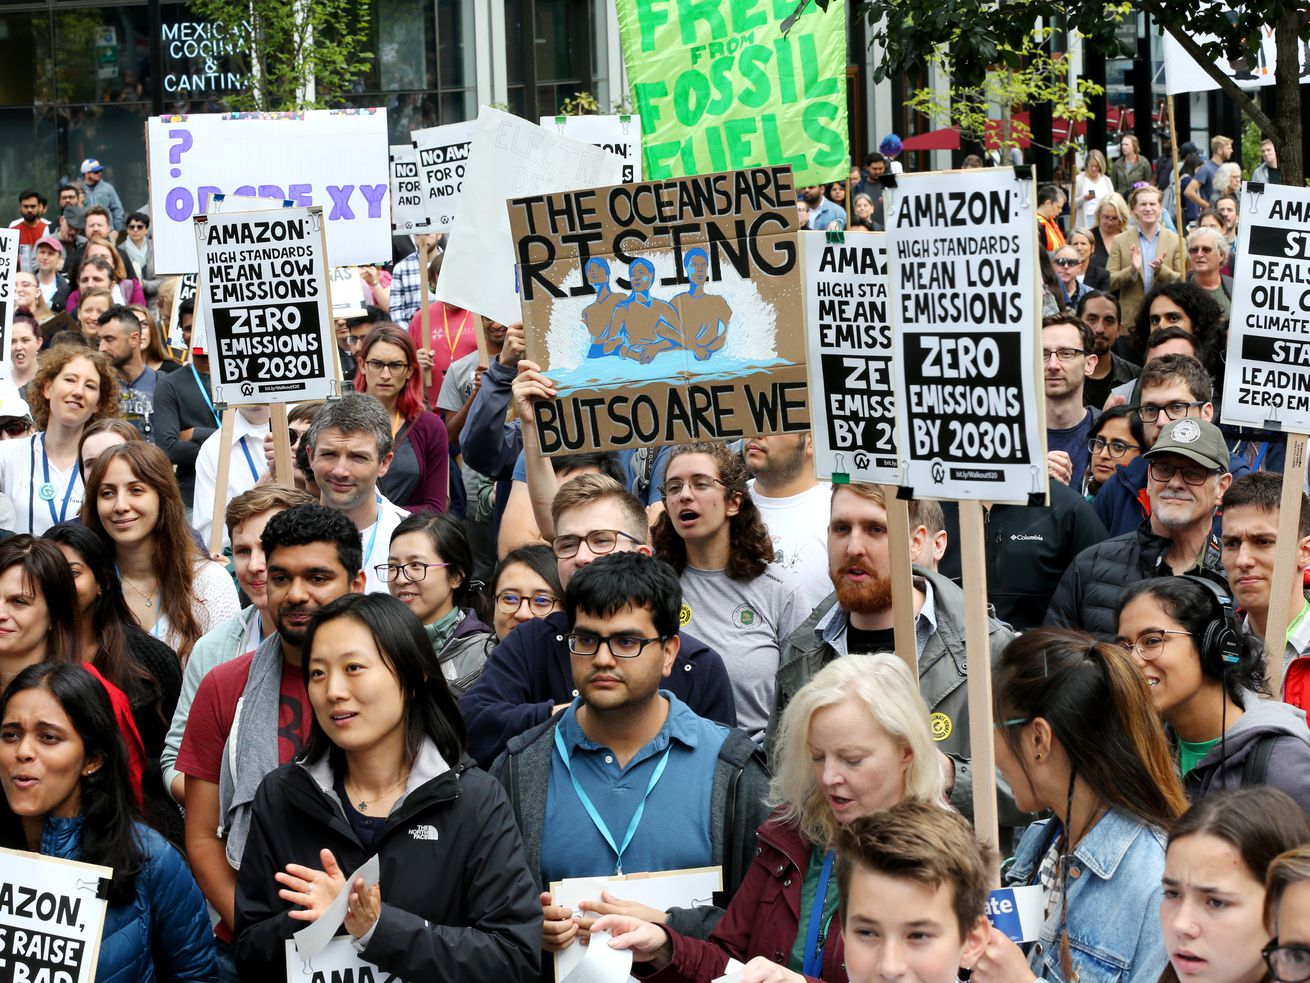 Amazon employees fear HR is targeting minority and activism groups in email monitoring program